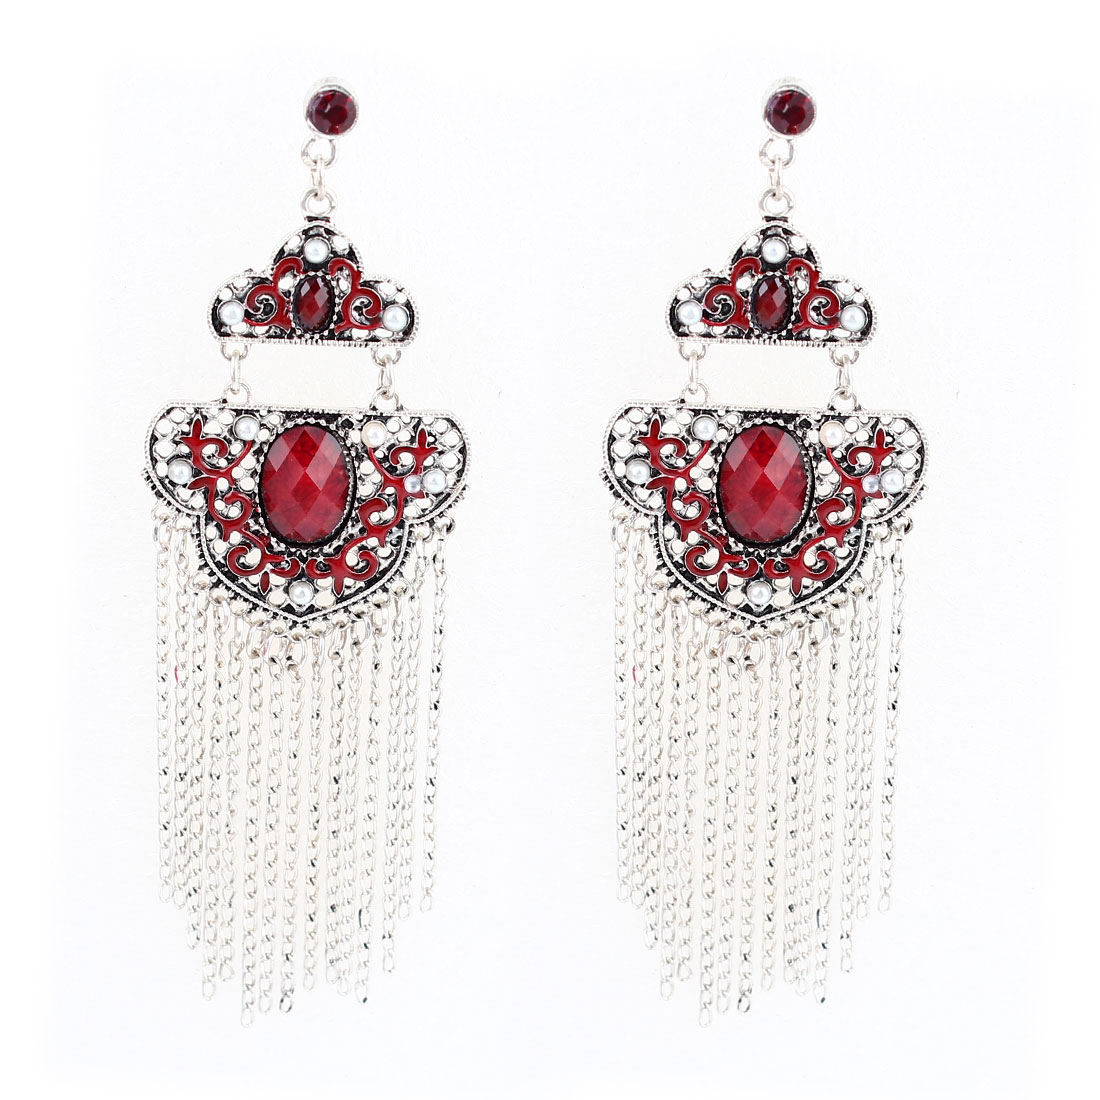 11cm Long Red Faceted Rhinestone Inlaid Gray Metal Chain Tassels Dangling Earrings Pair